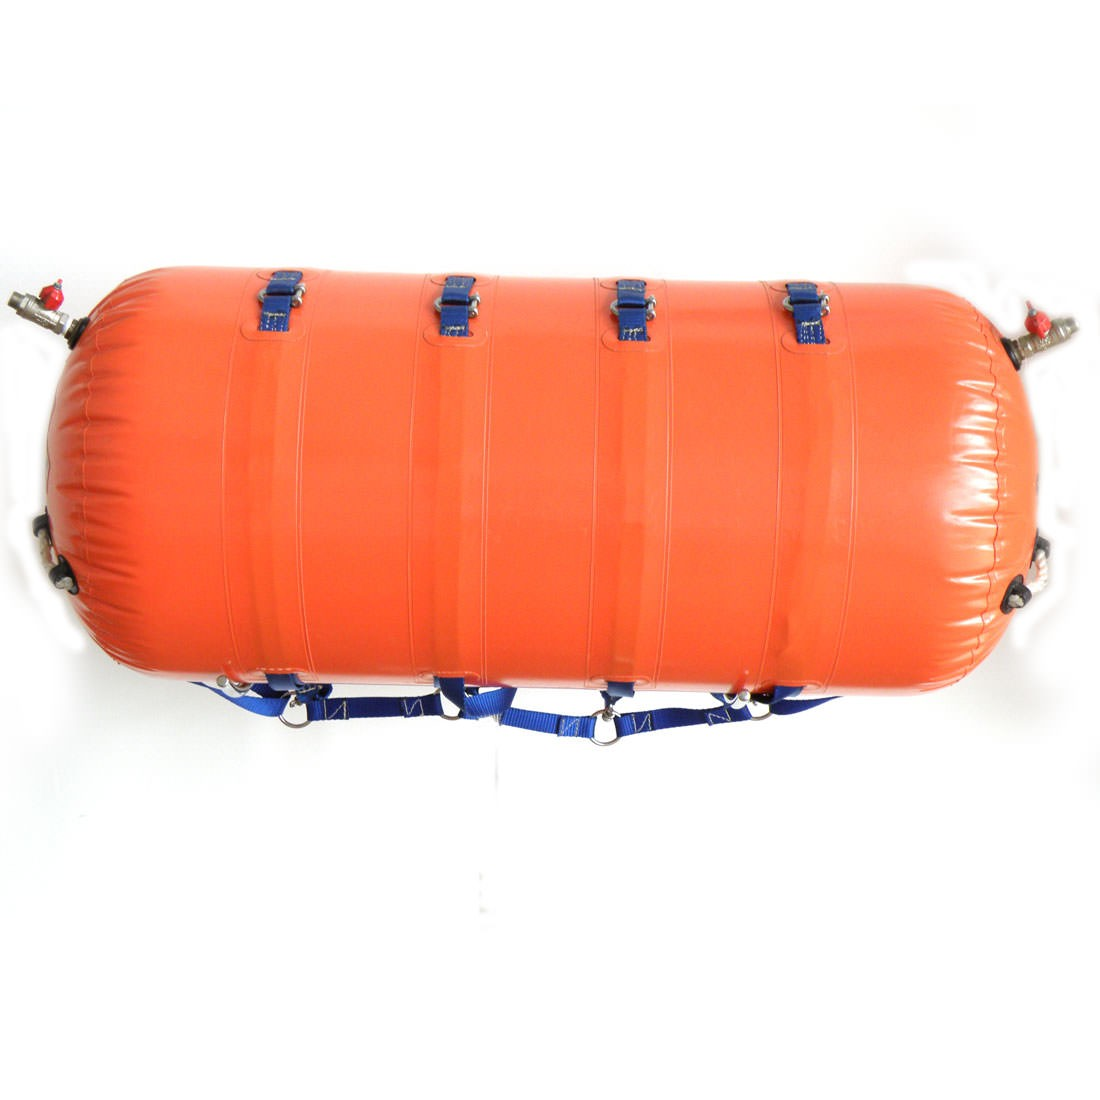 Seaflex Inflatable Buoyancy Unit 77,762 lbs 35,000 kg Lift Capacity SEF-35TIBU-016